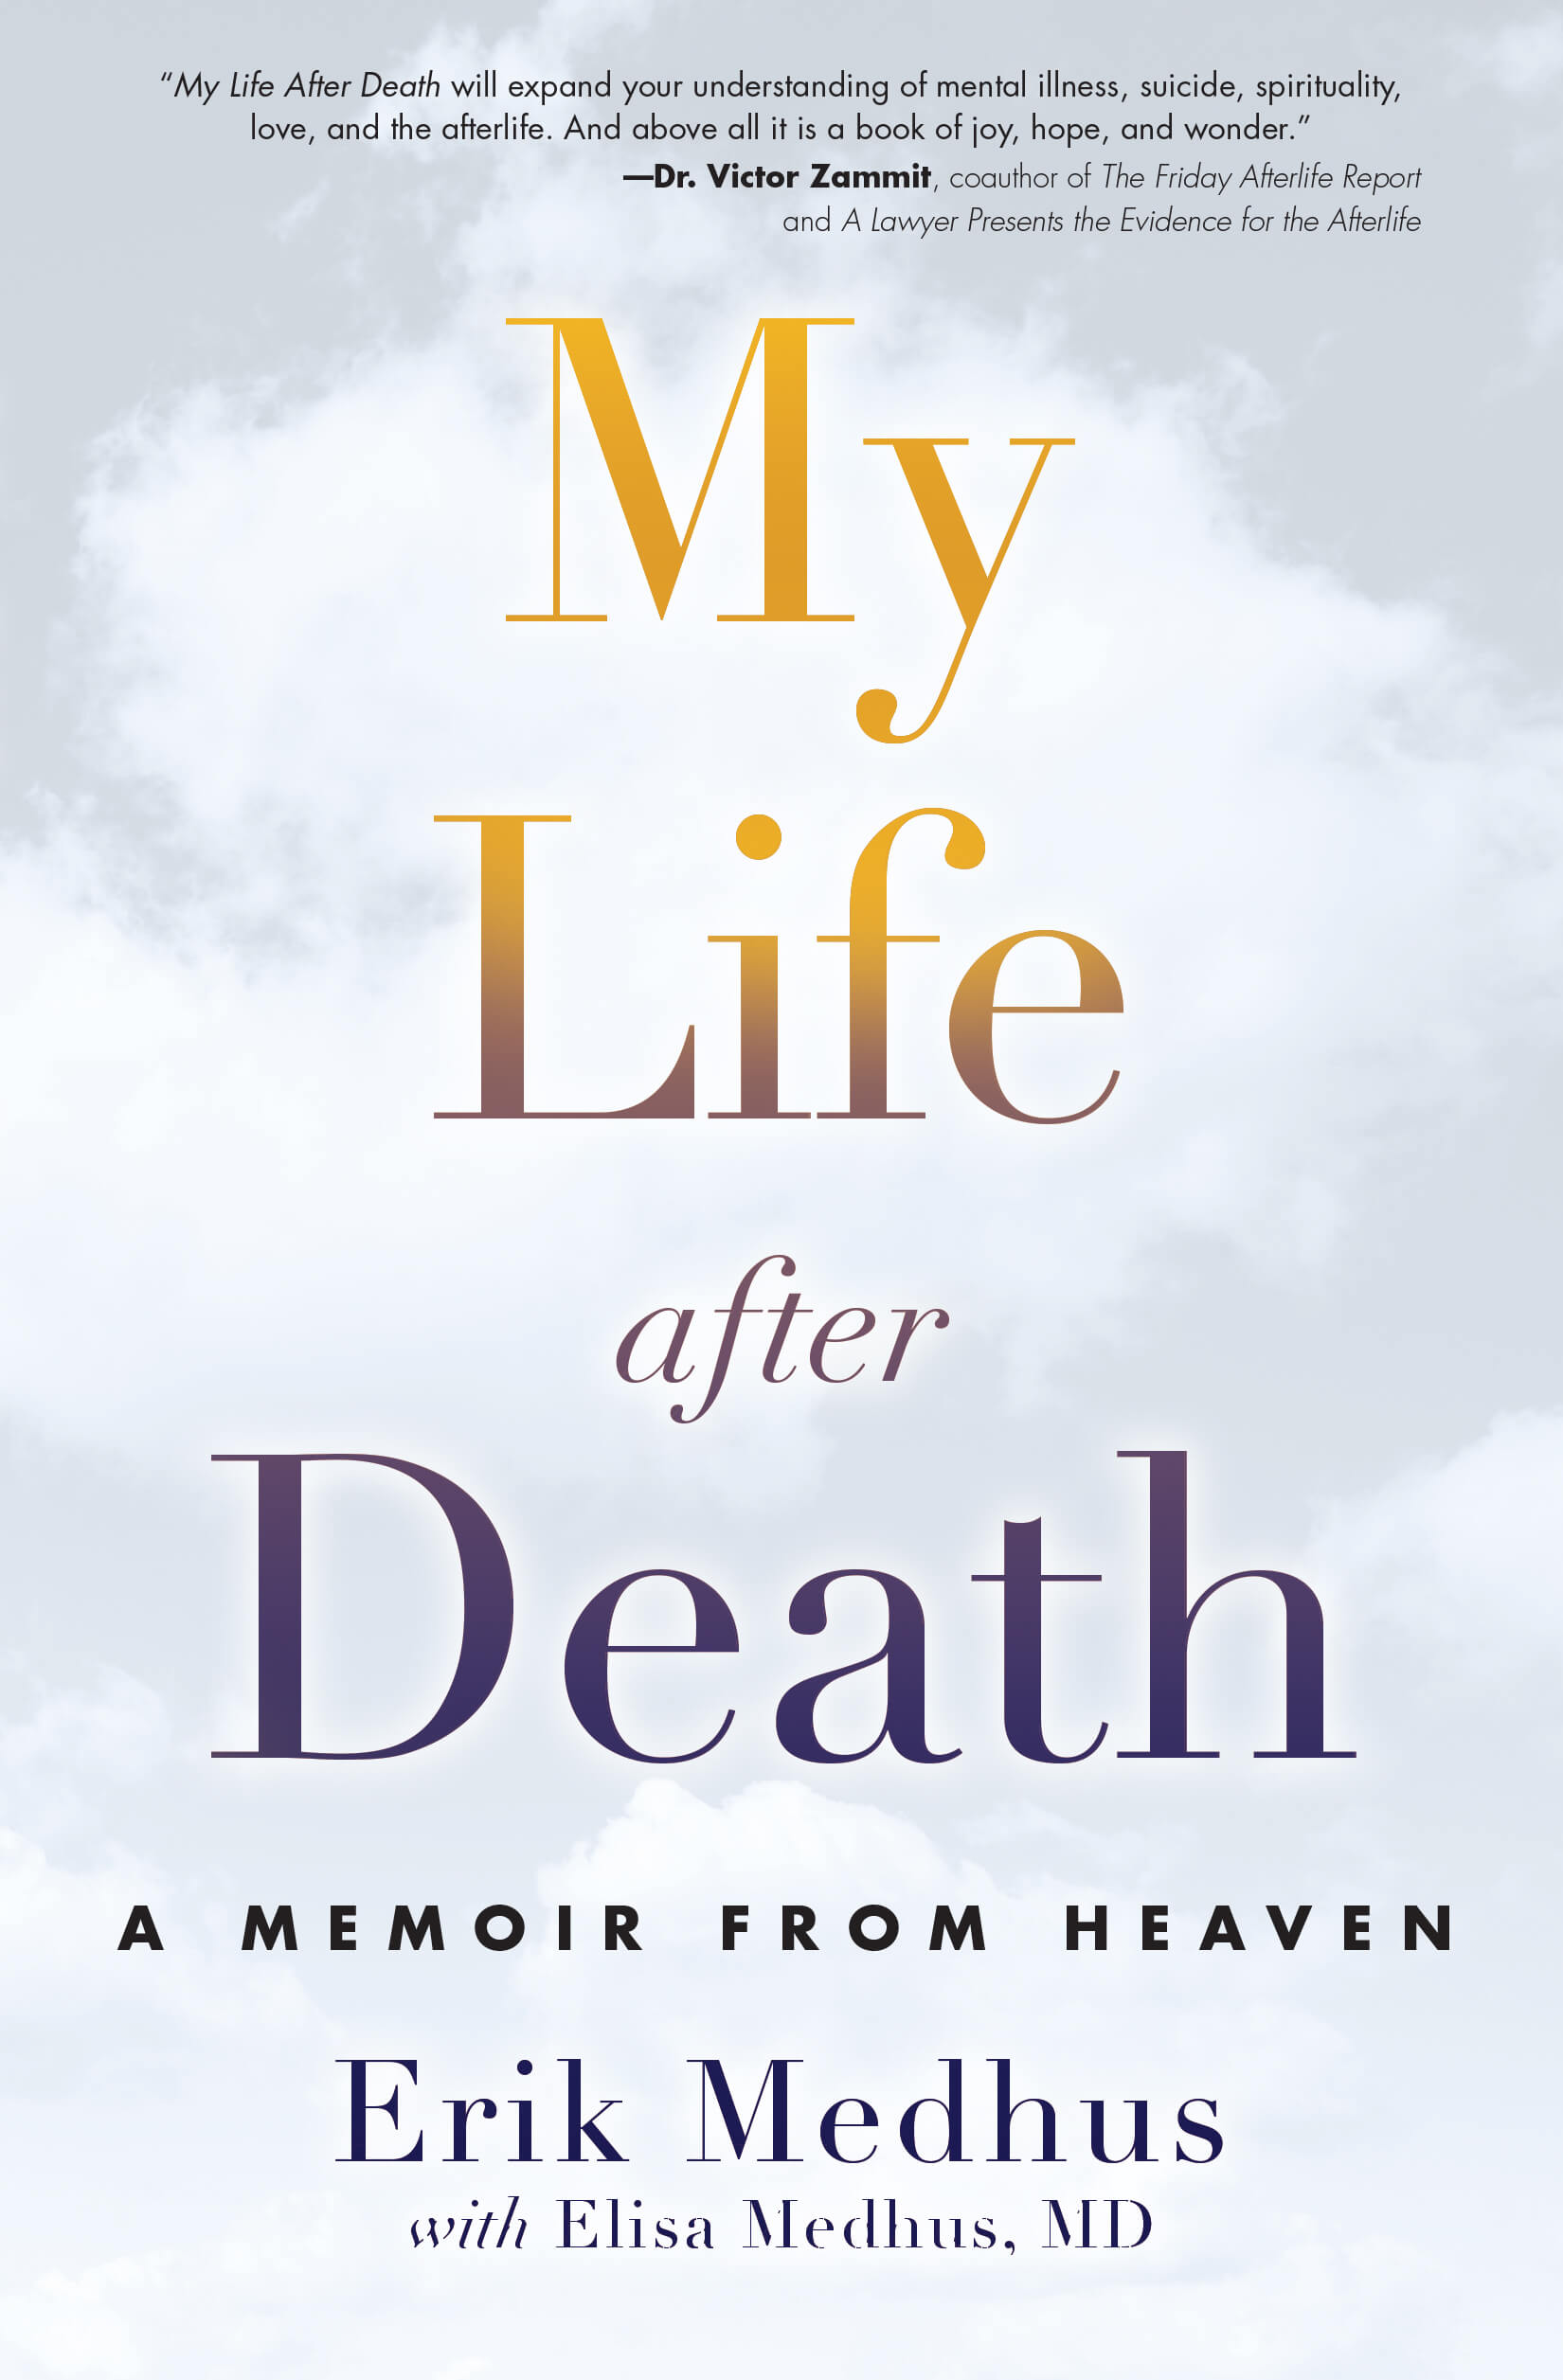 essay on life after death life after death essays and papers 123helpme